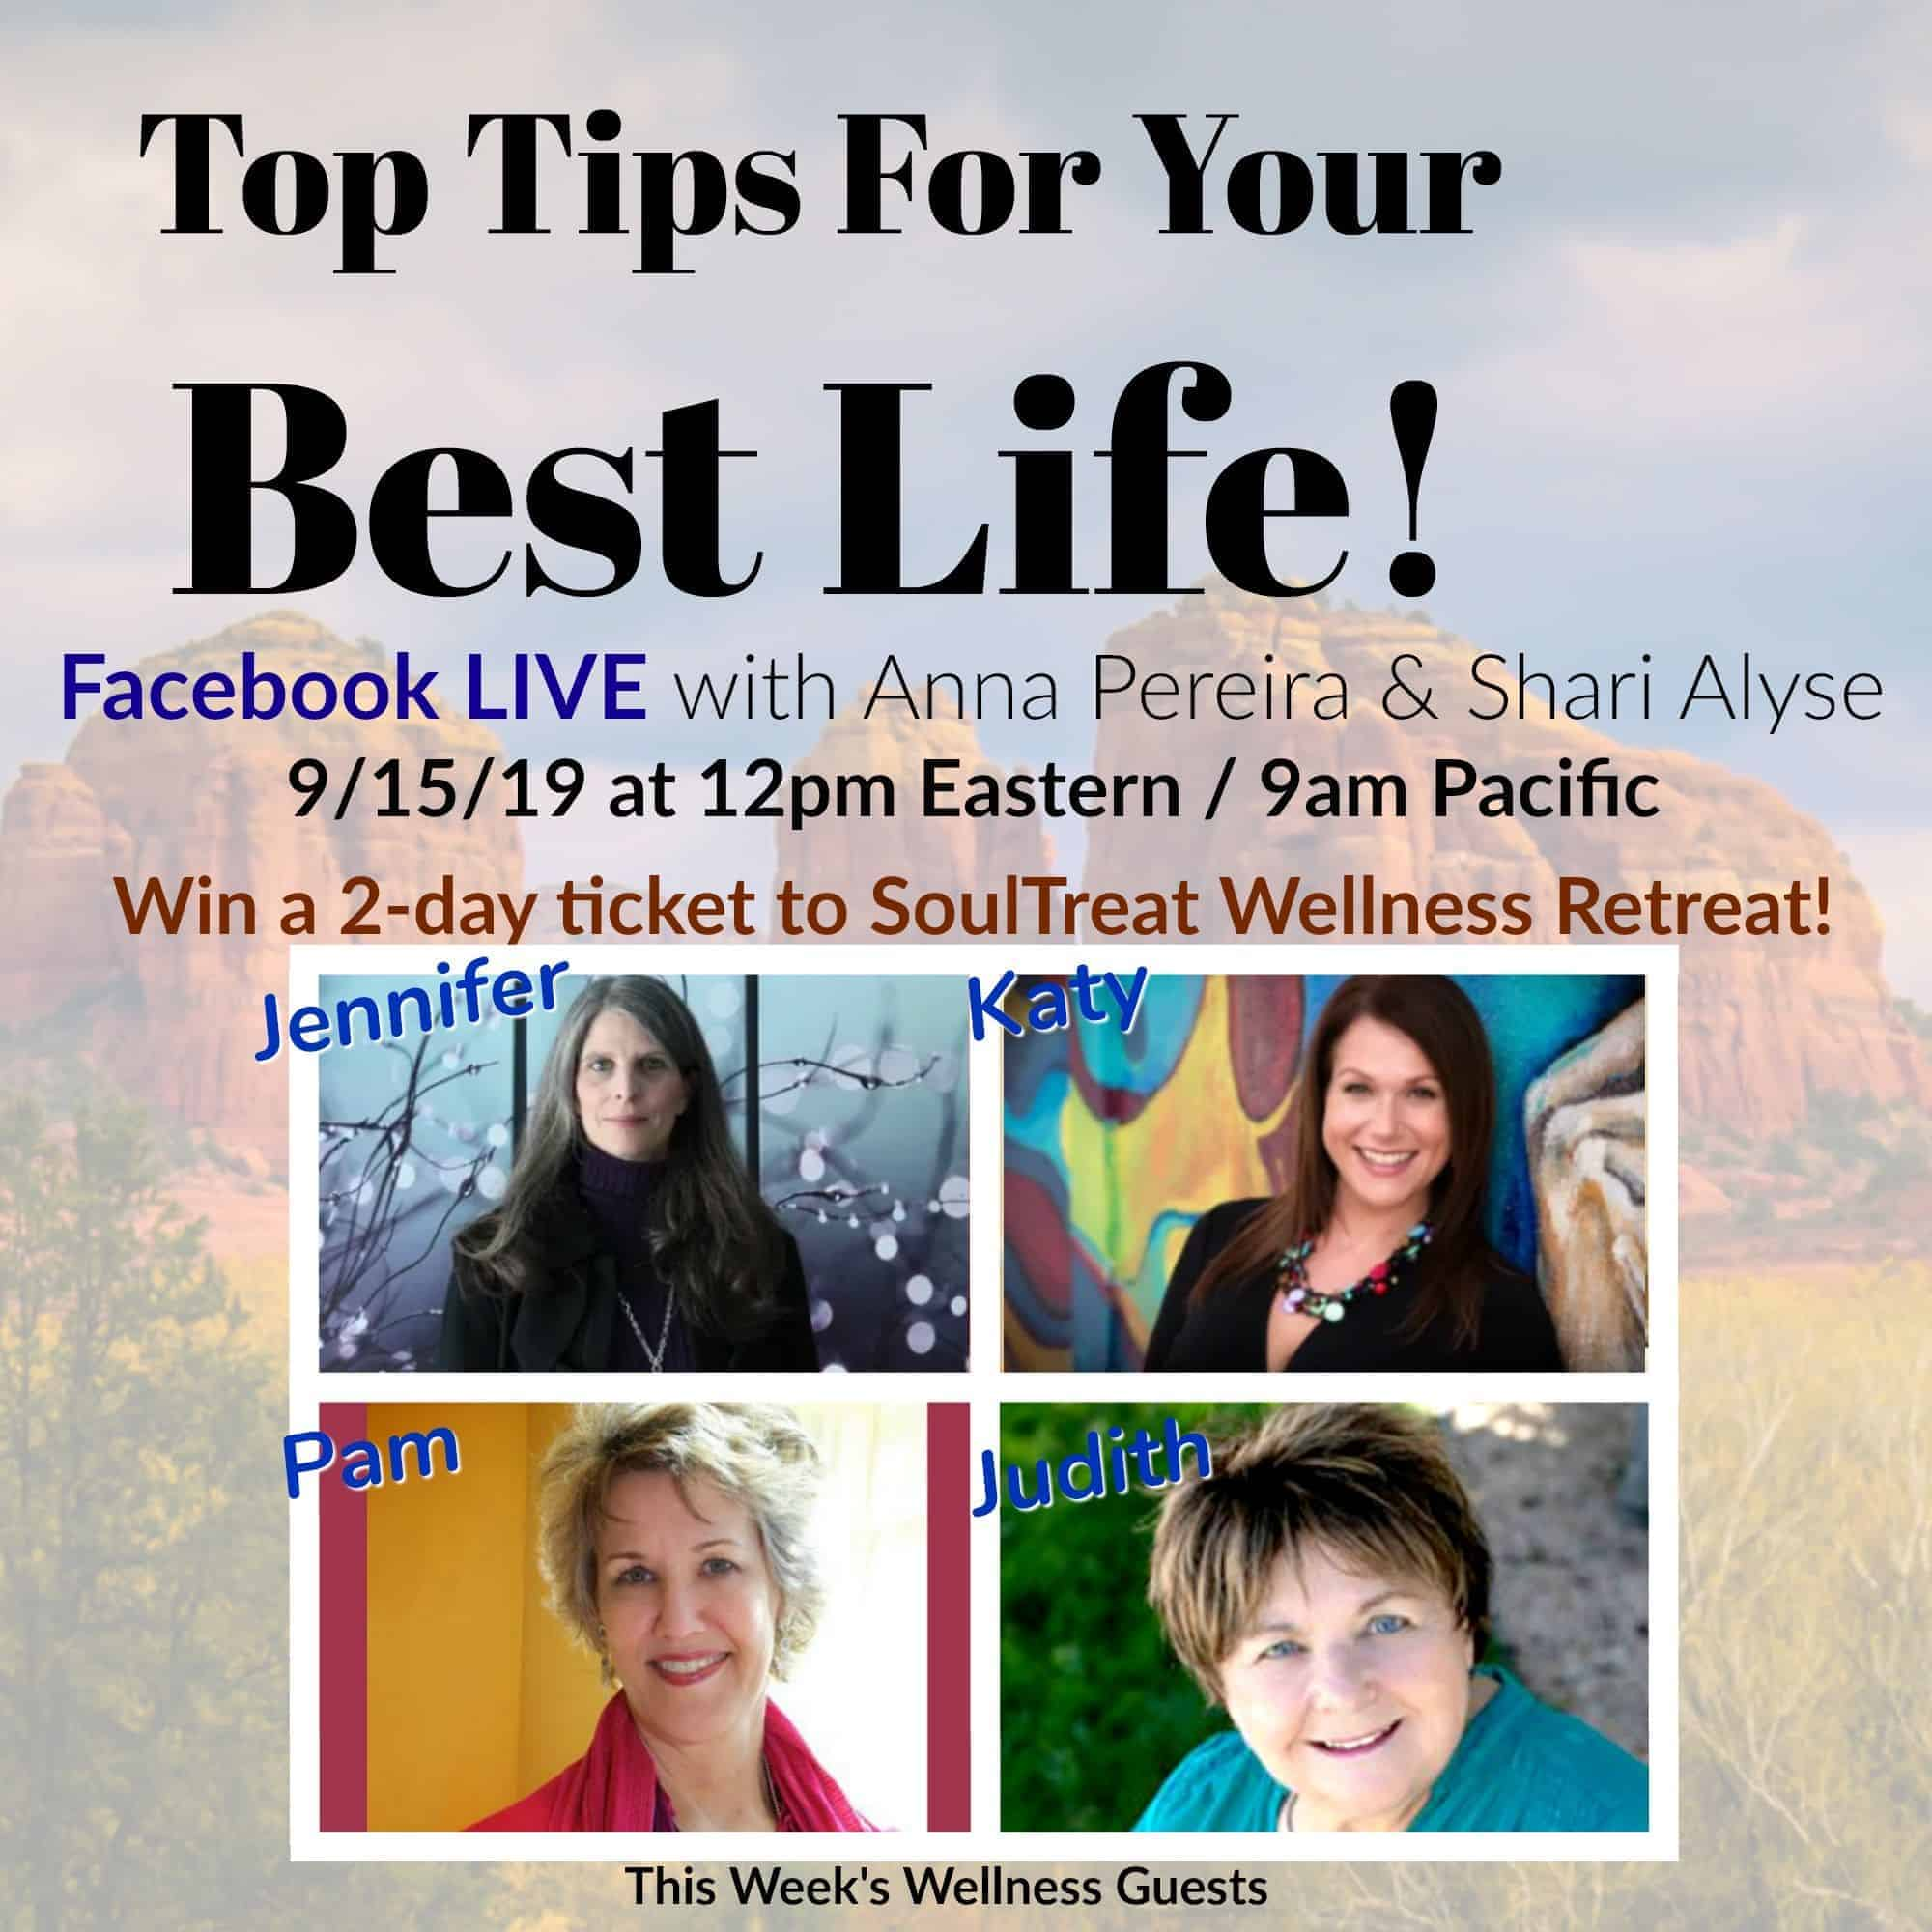 Top Tips for Your Best Life – Episode 4! Come meet Wellness Experts & WU World-Changers, J